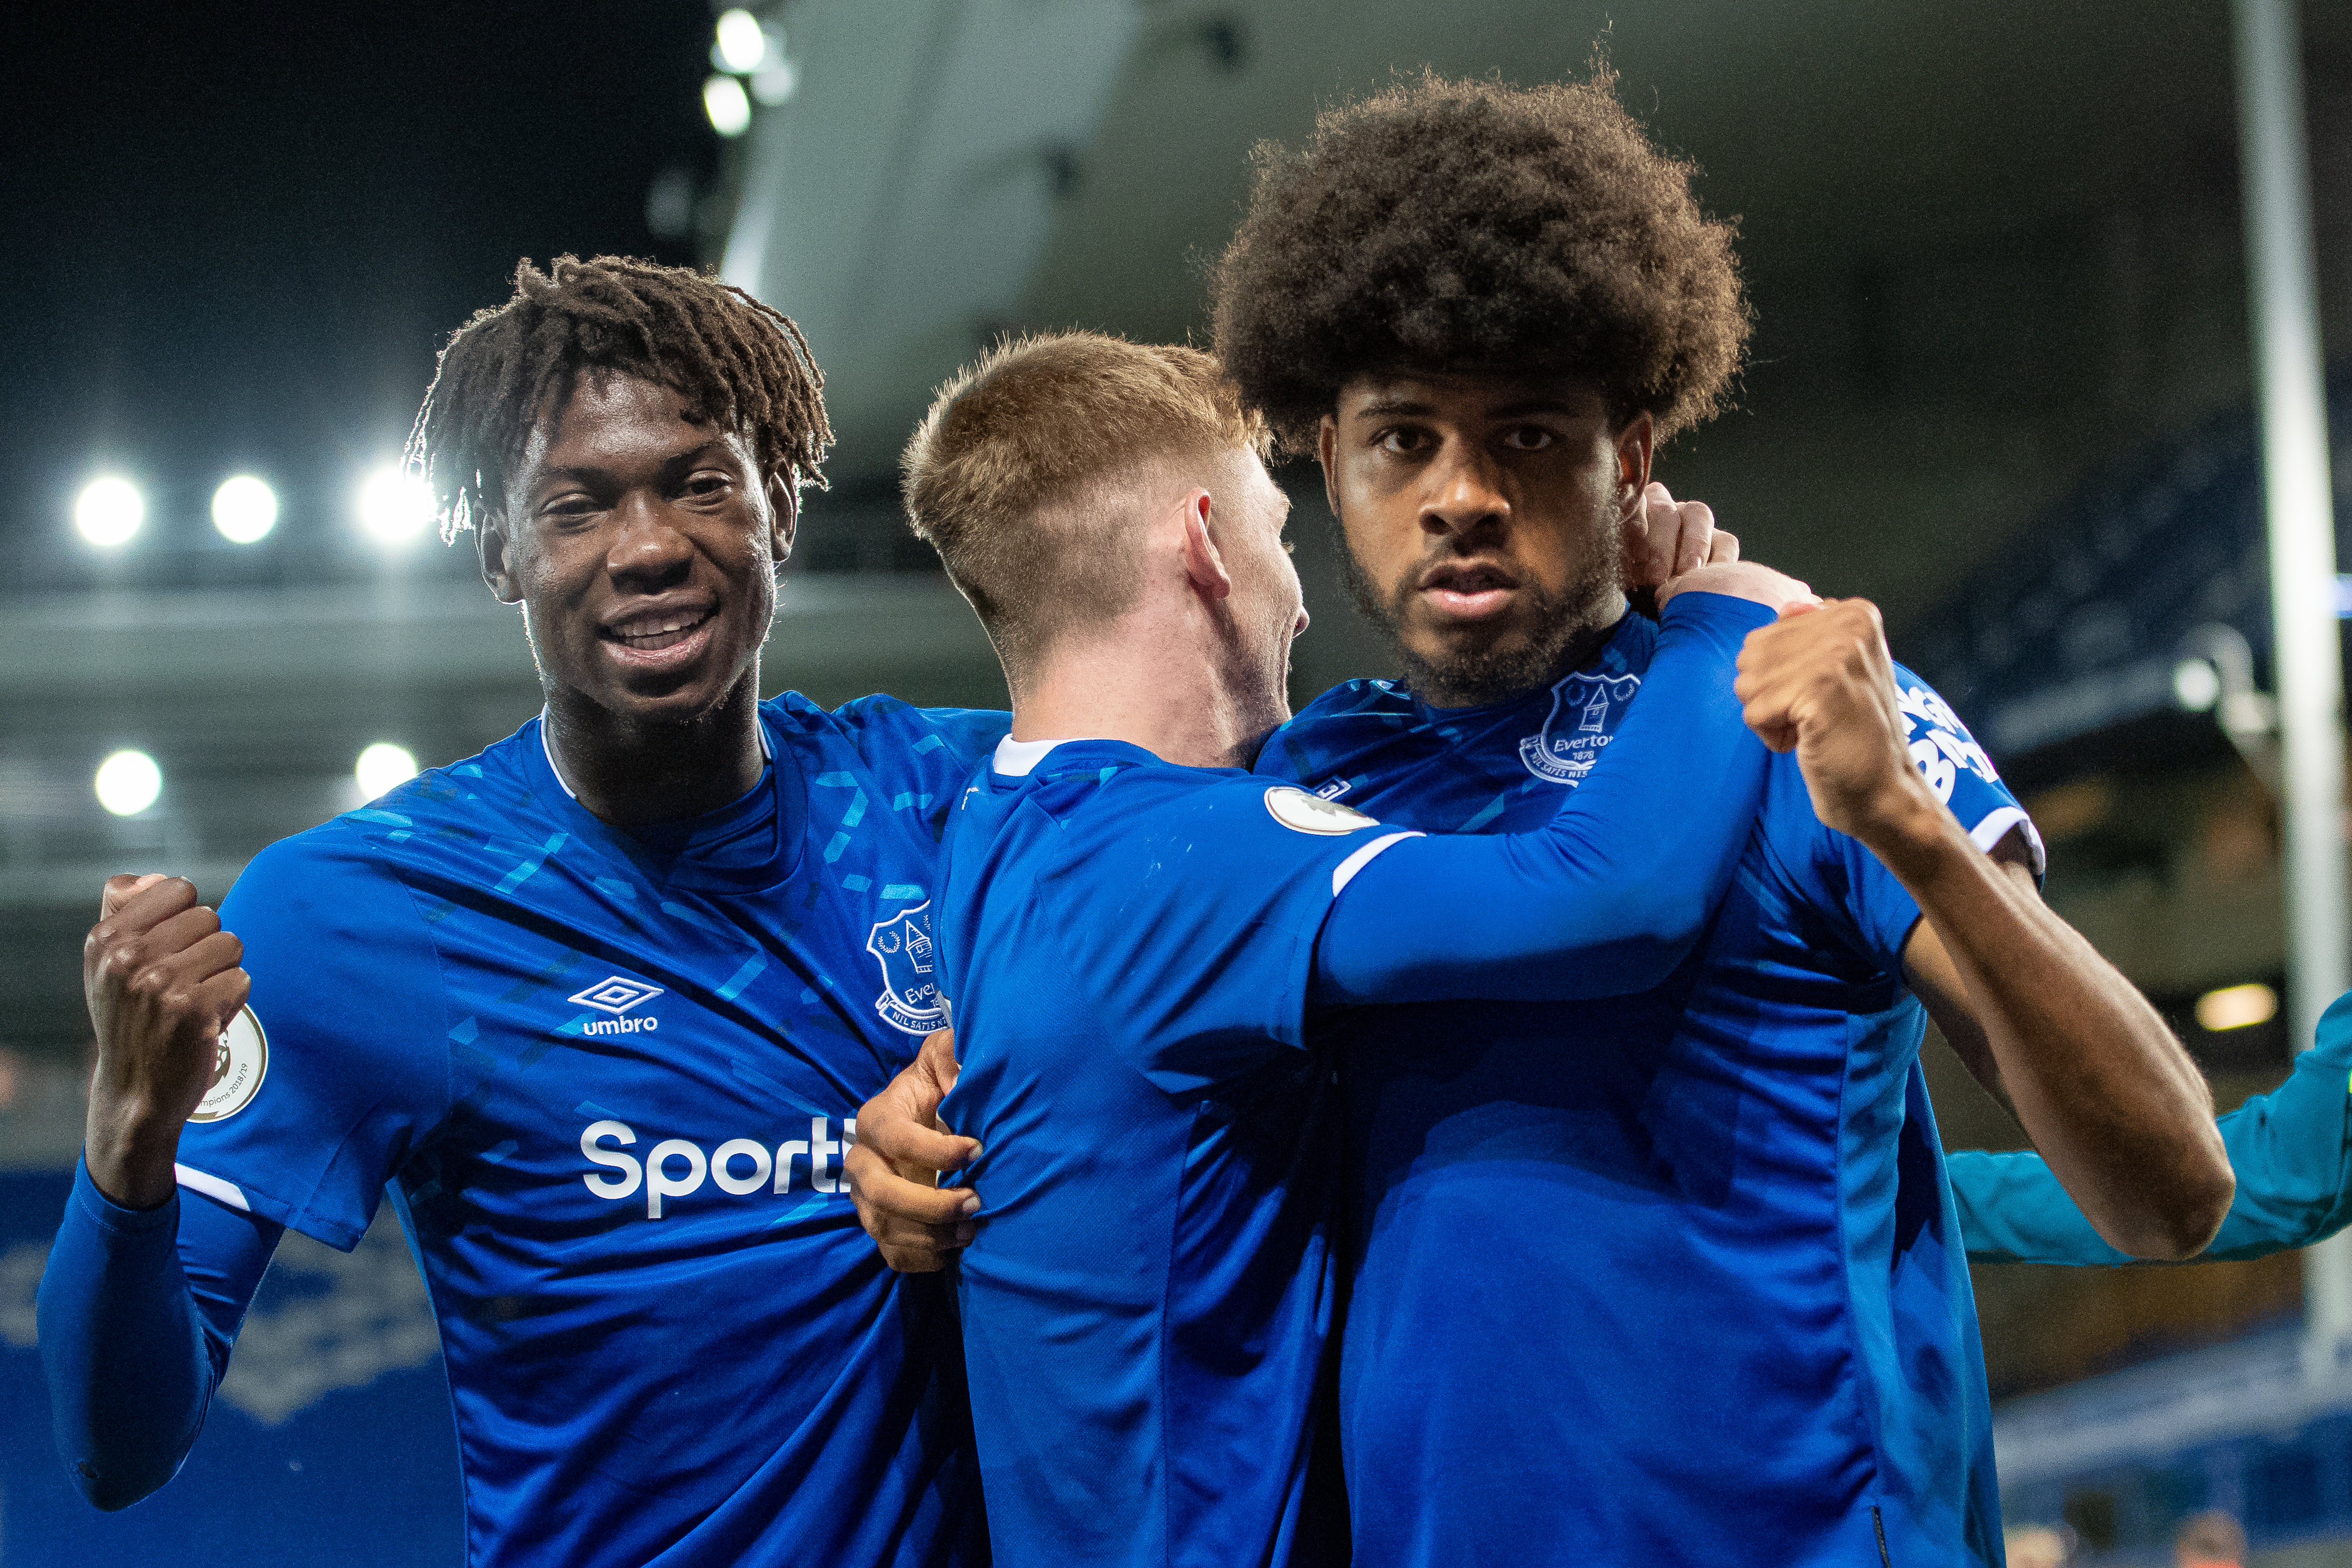 Tuesday's Toffee Bites: Everton U18s & U23s victorious, two youngsters linked, Gueye talks PSG move